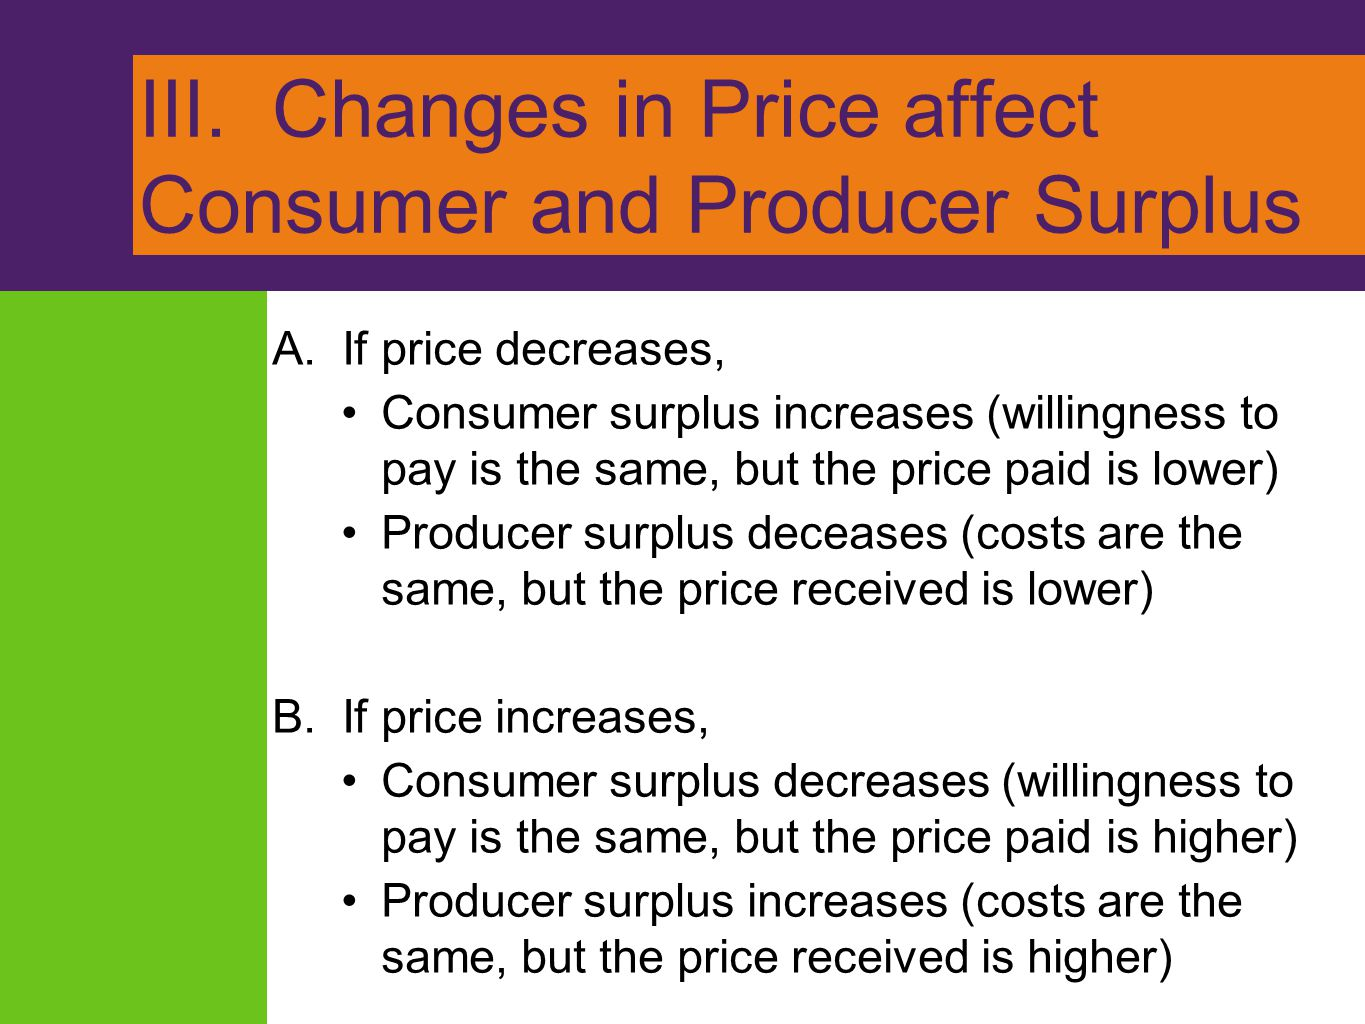 III. Changes in Price affect Consumer and Producer Surplus